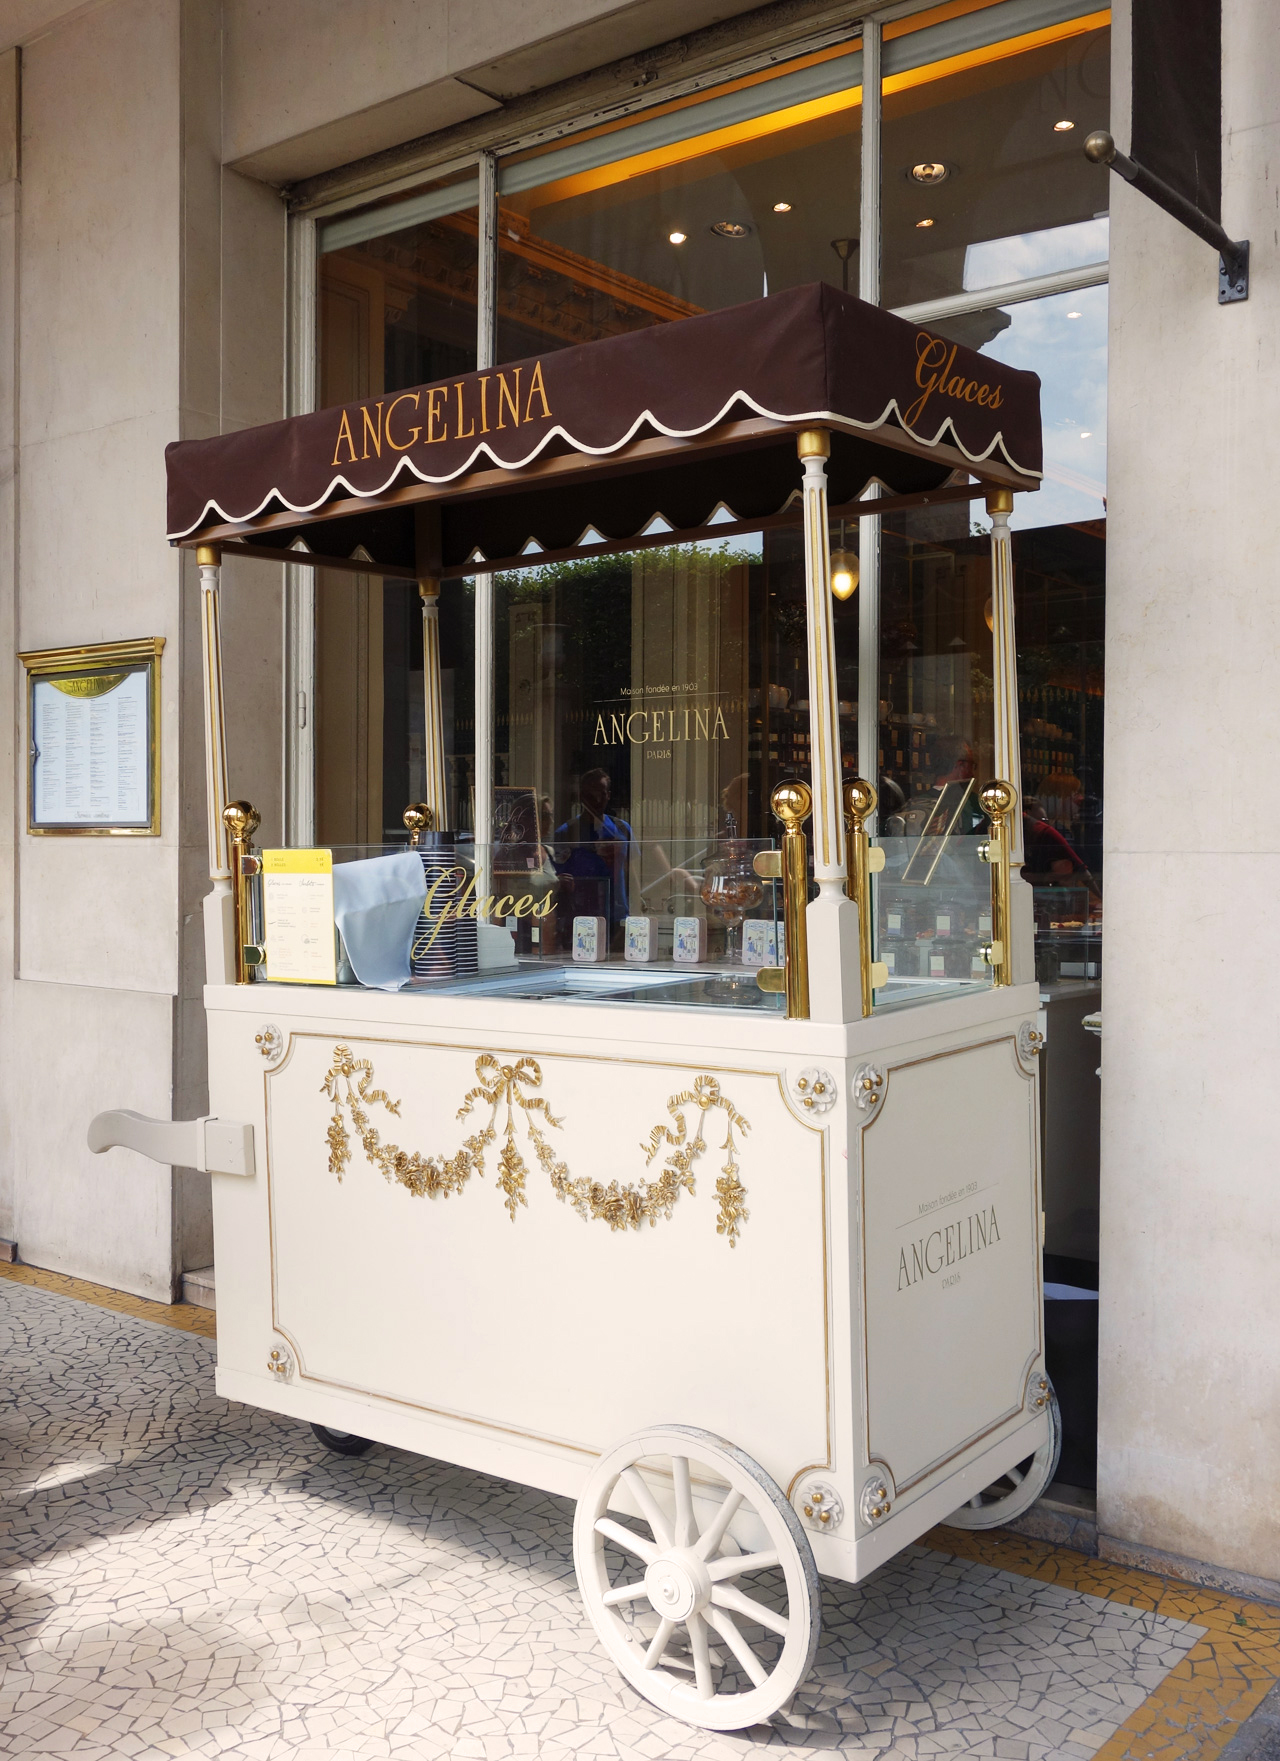 06_Angelina-Paris-Glaces